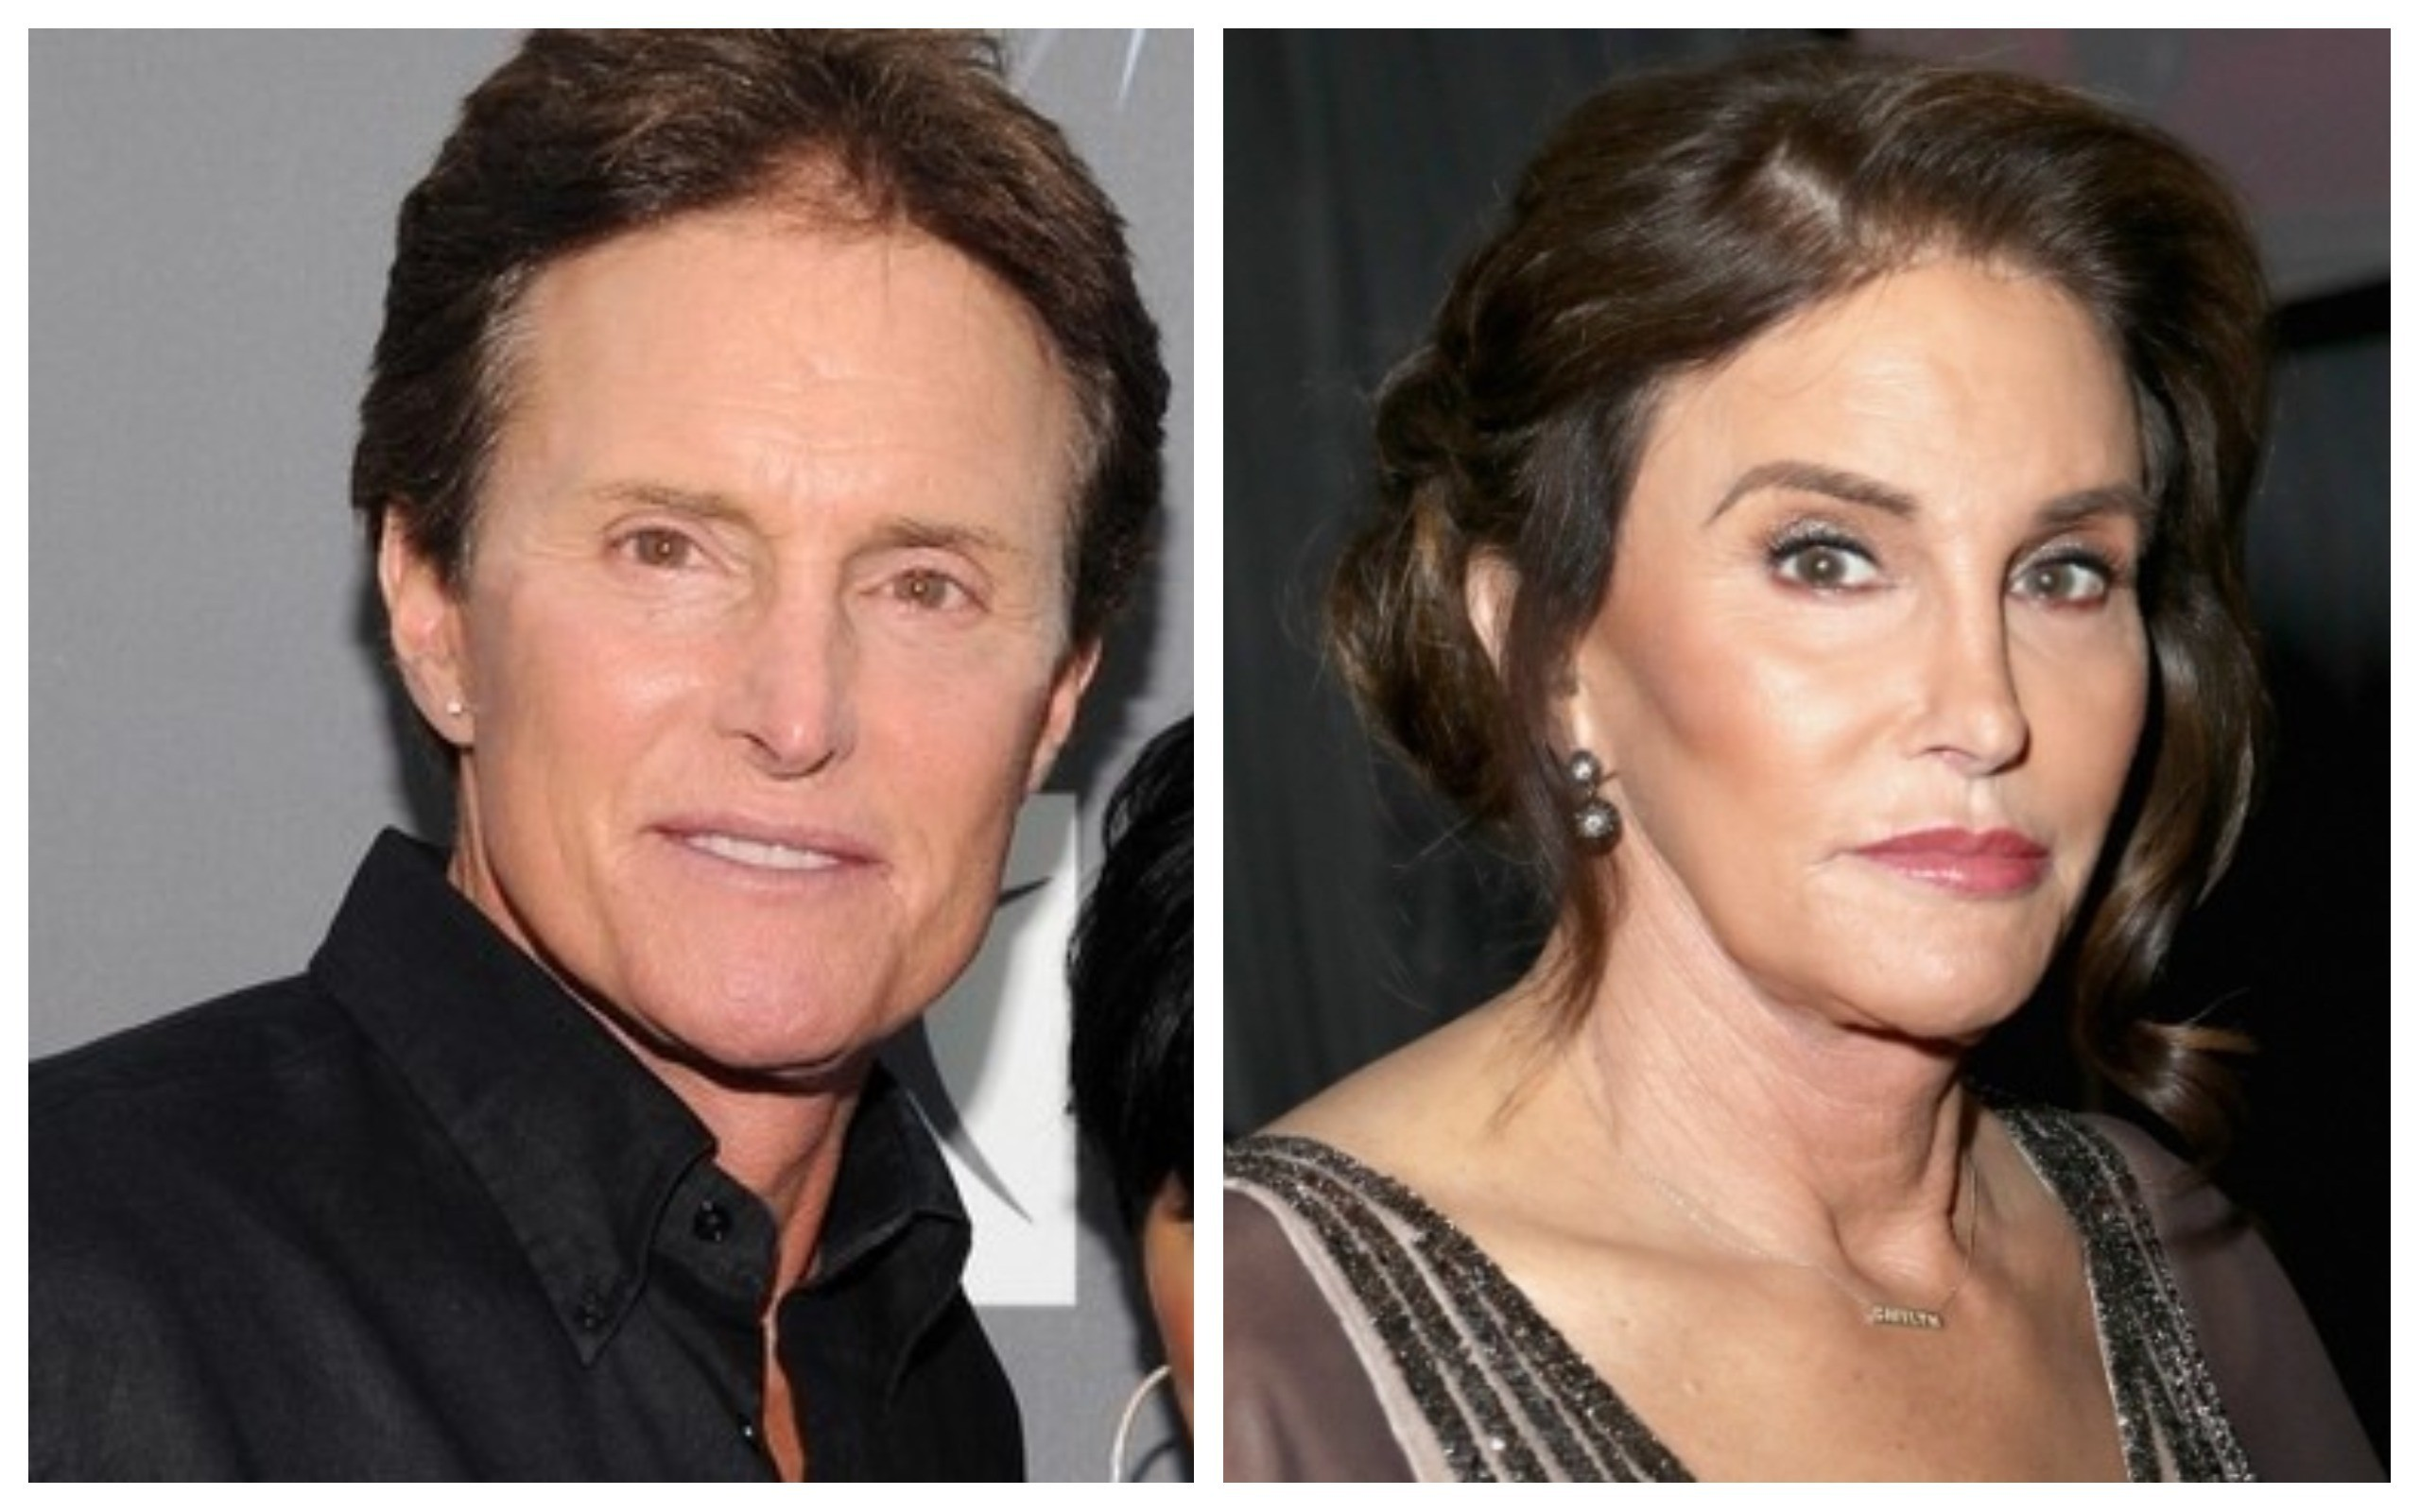 Bruce Jenner / Caitlyn Jenner (Foto: Getty Images)